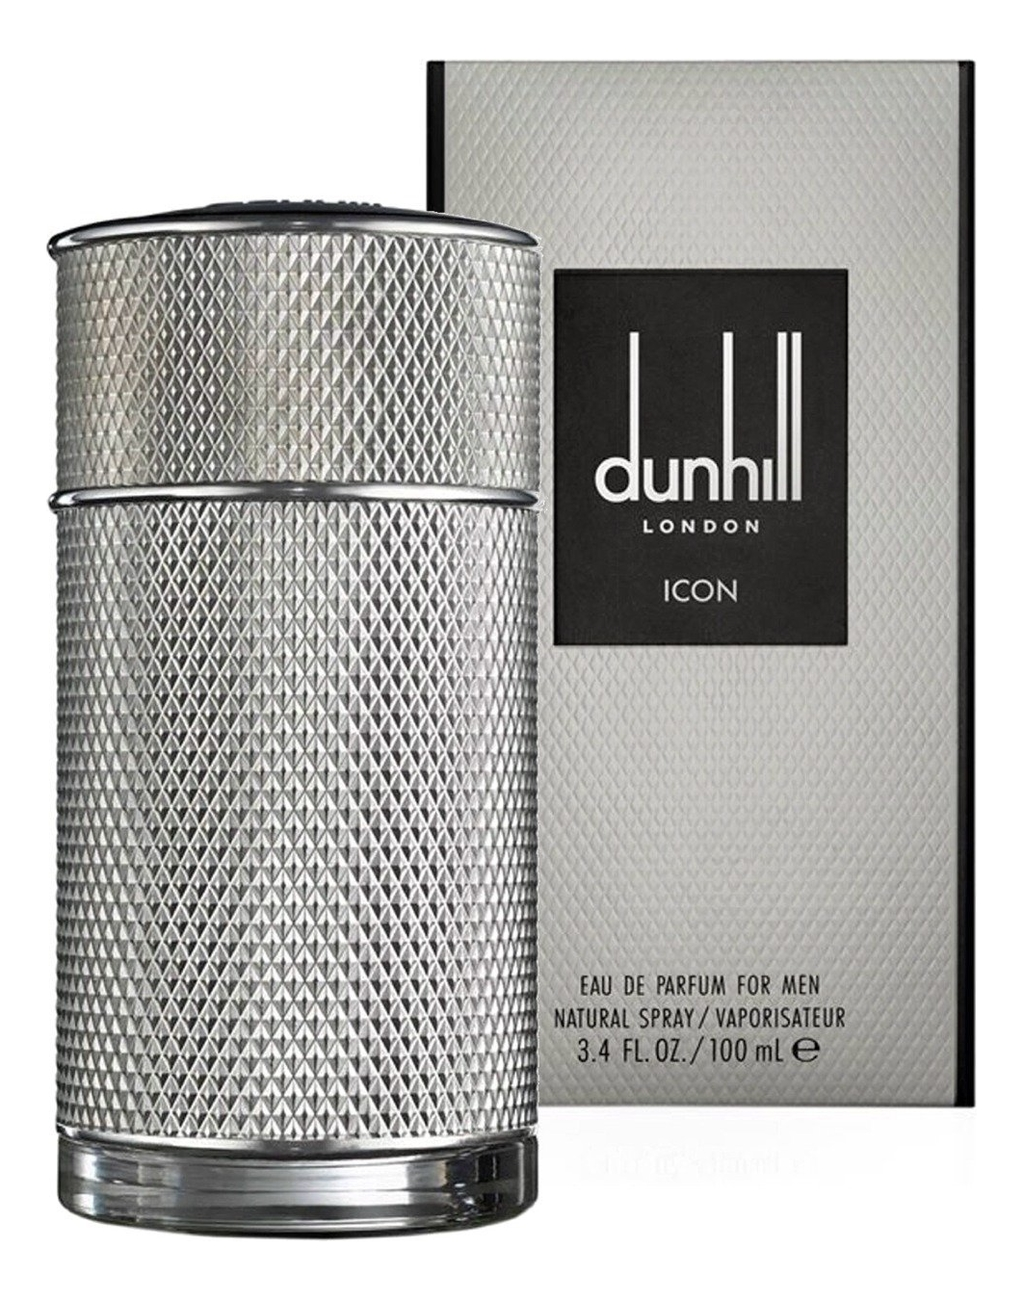 alfred dunhill dunhill Icon: парфюмерная вода 100мл